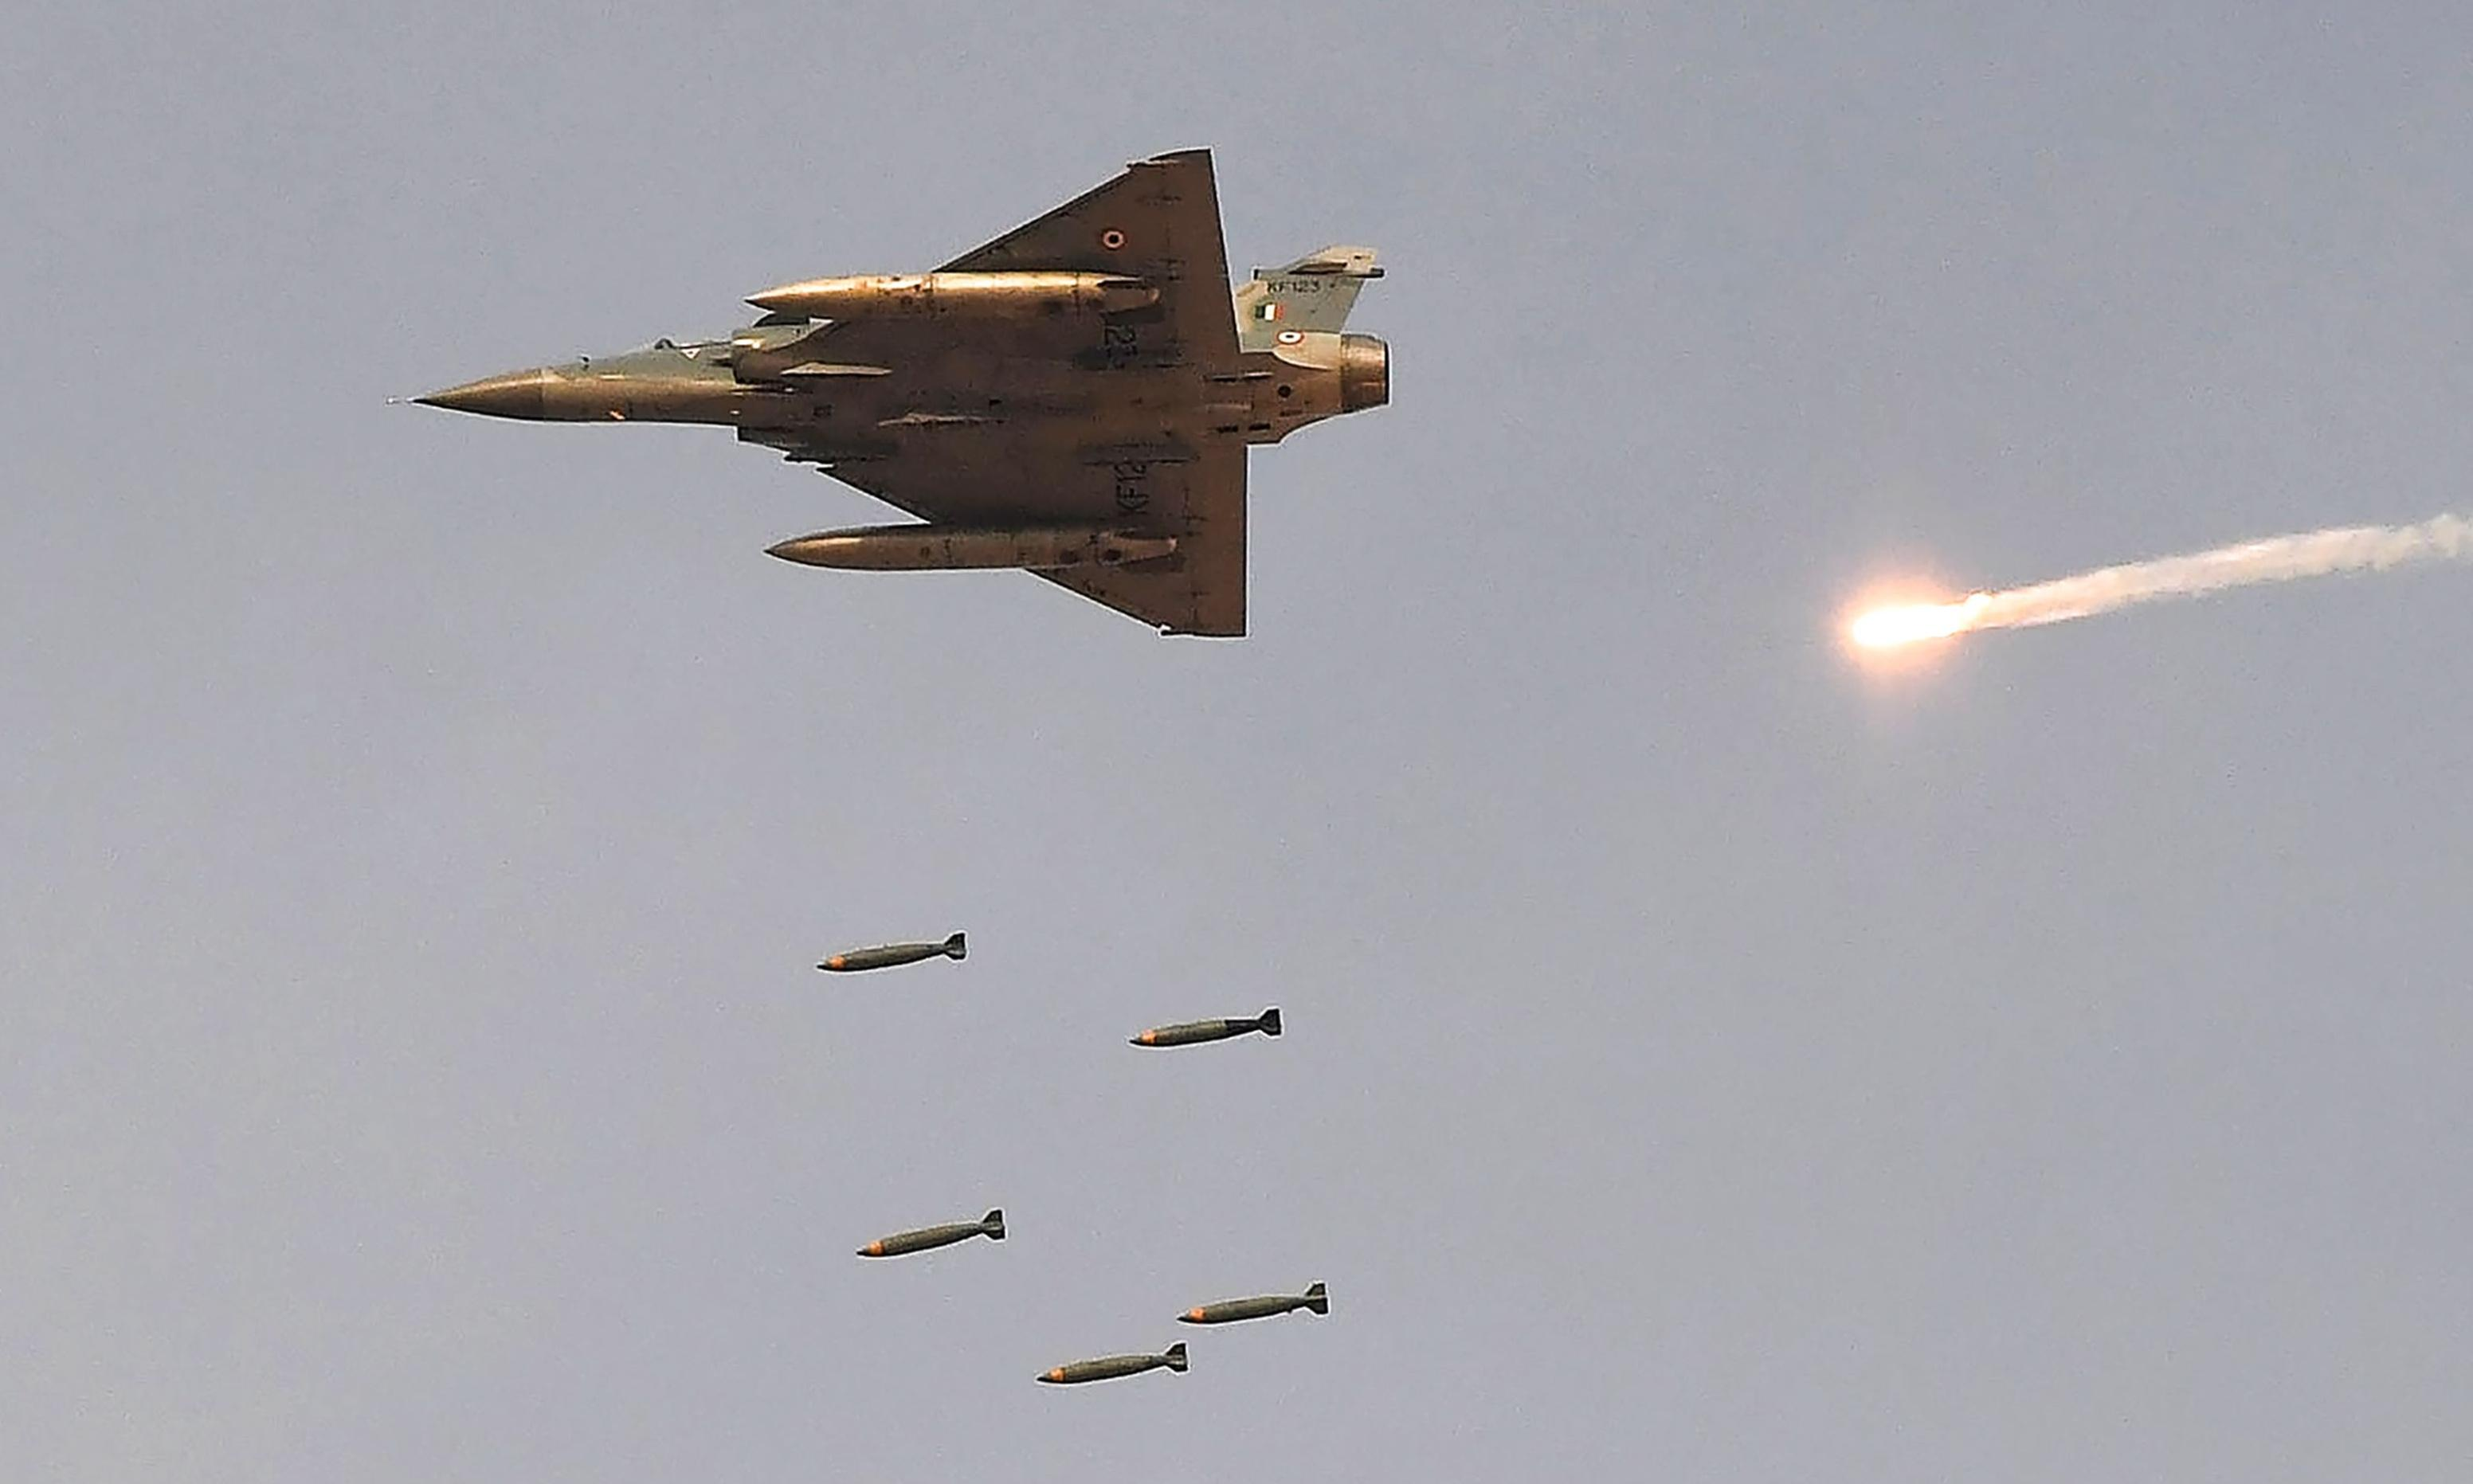 'Get ready for our surprise': Pakistan warns India it will respond to airstrikes